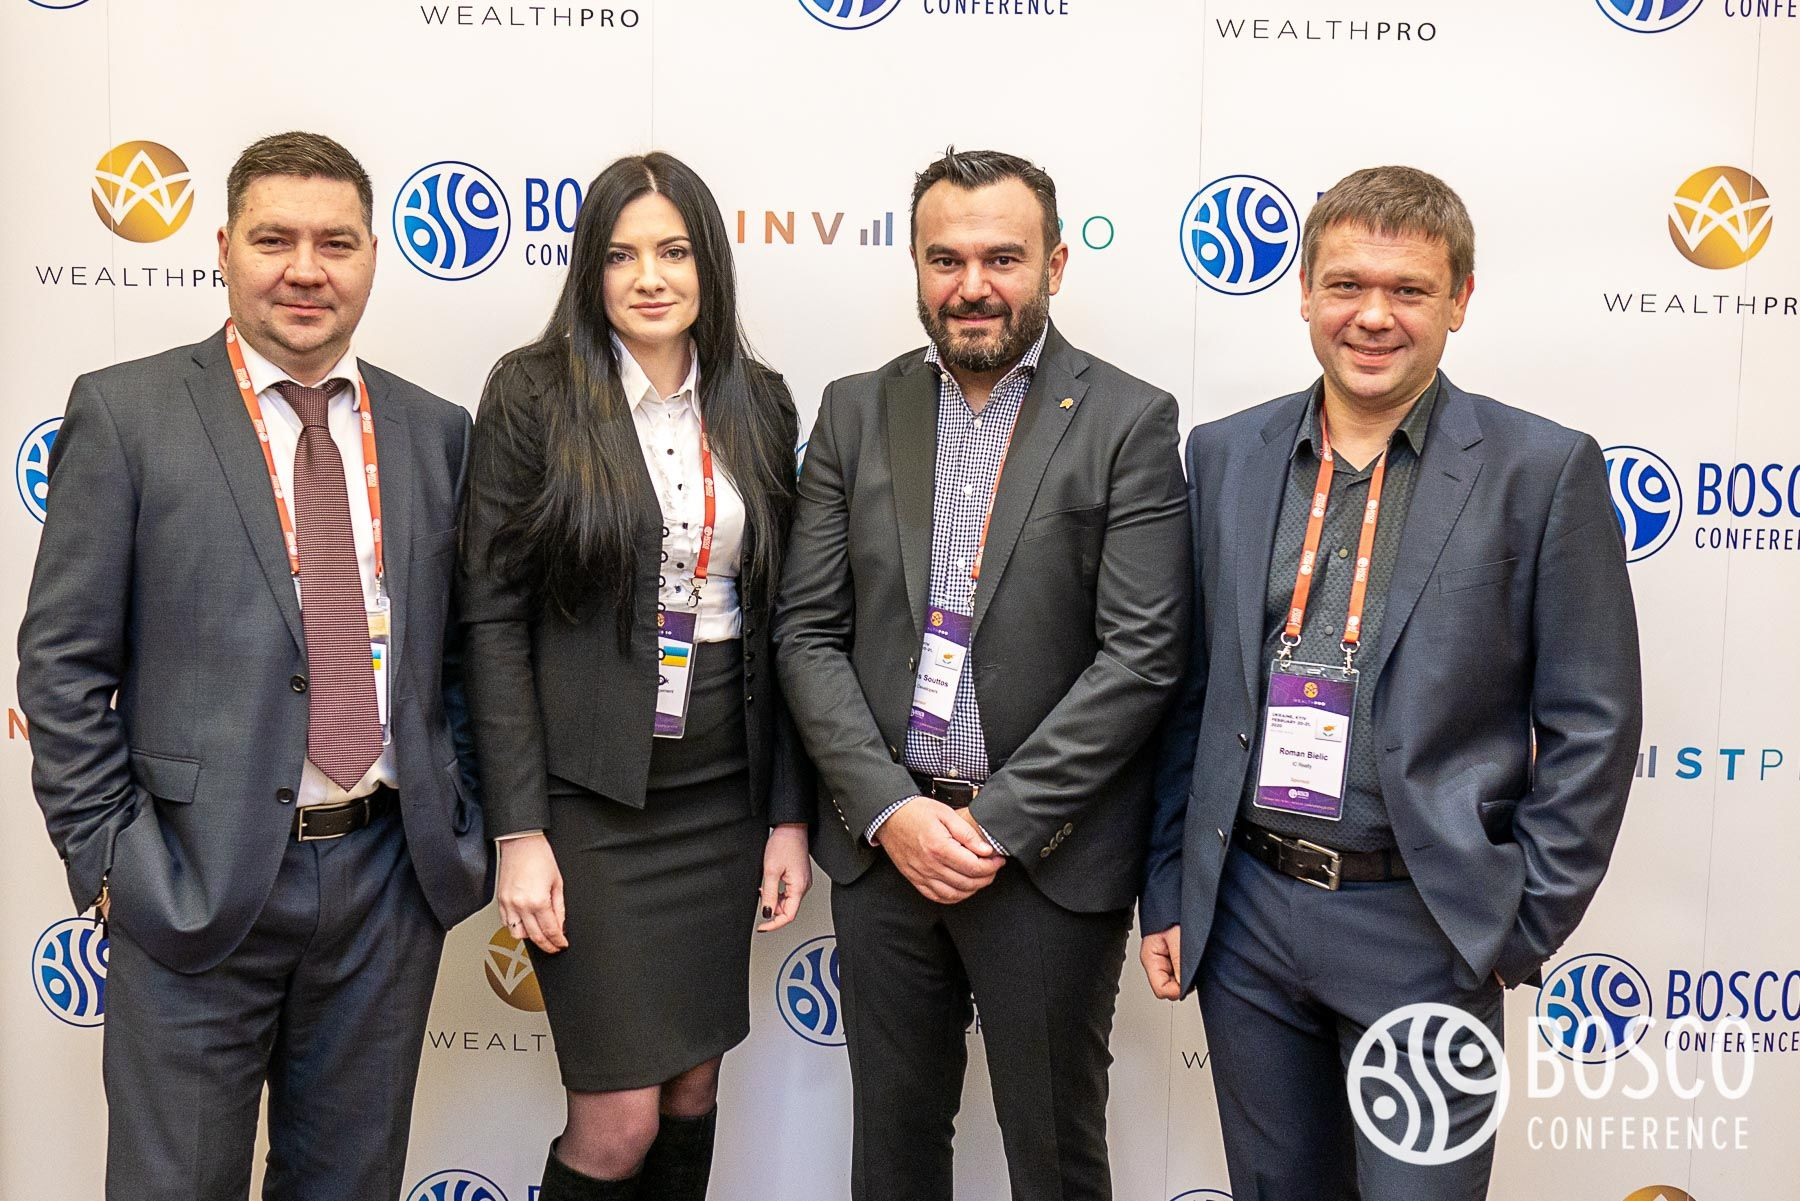 WealthPro Ukraine Kyiv 2020 2